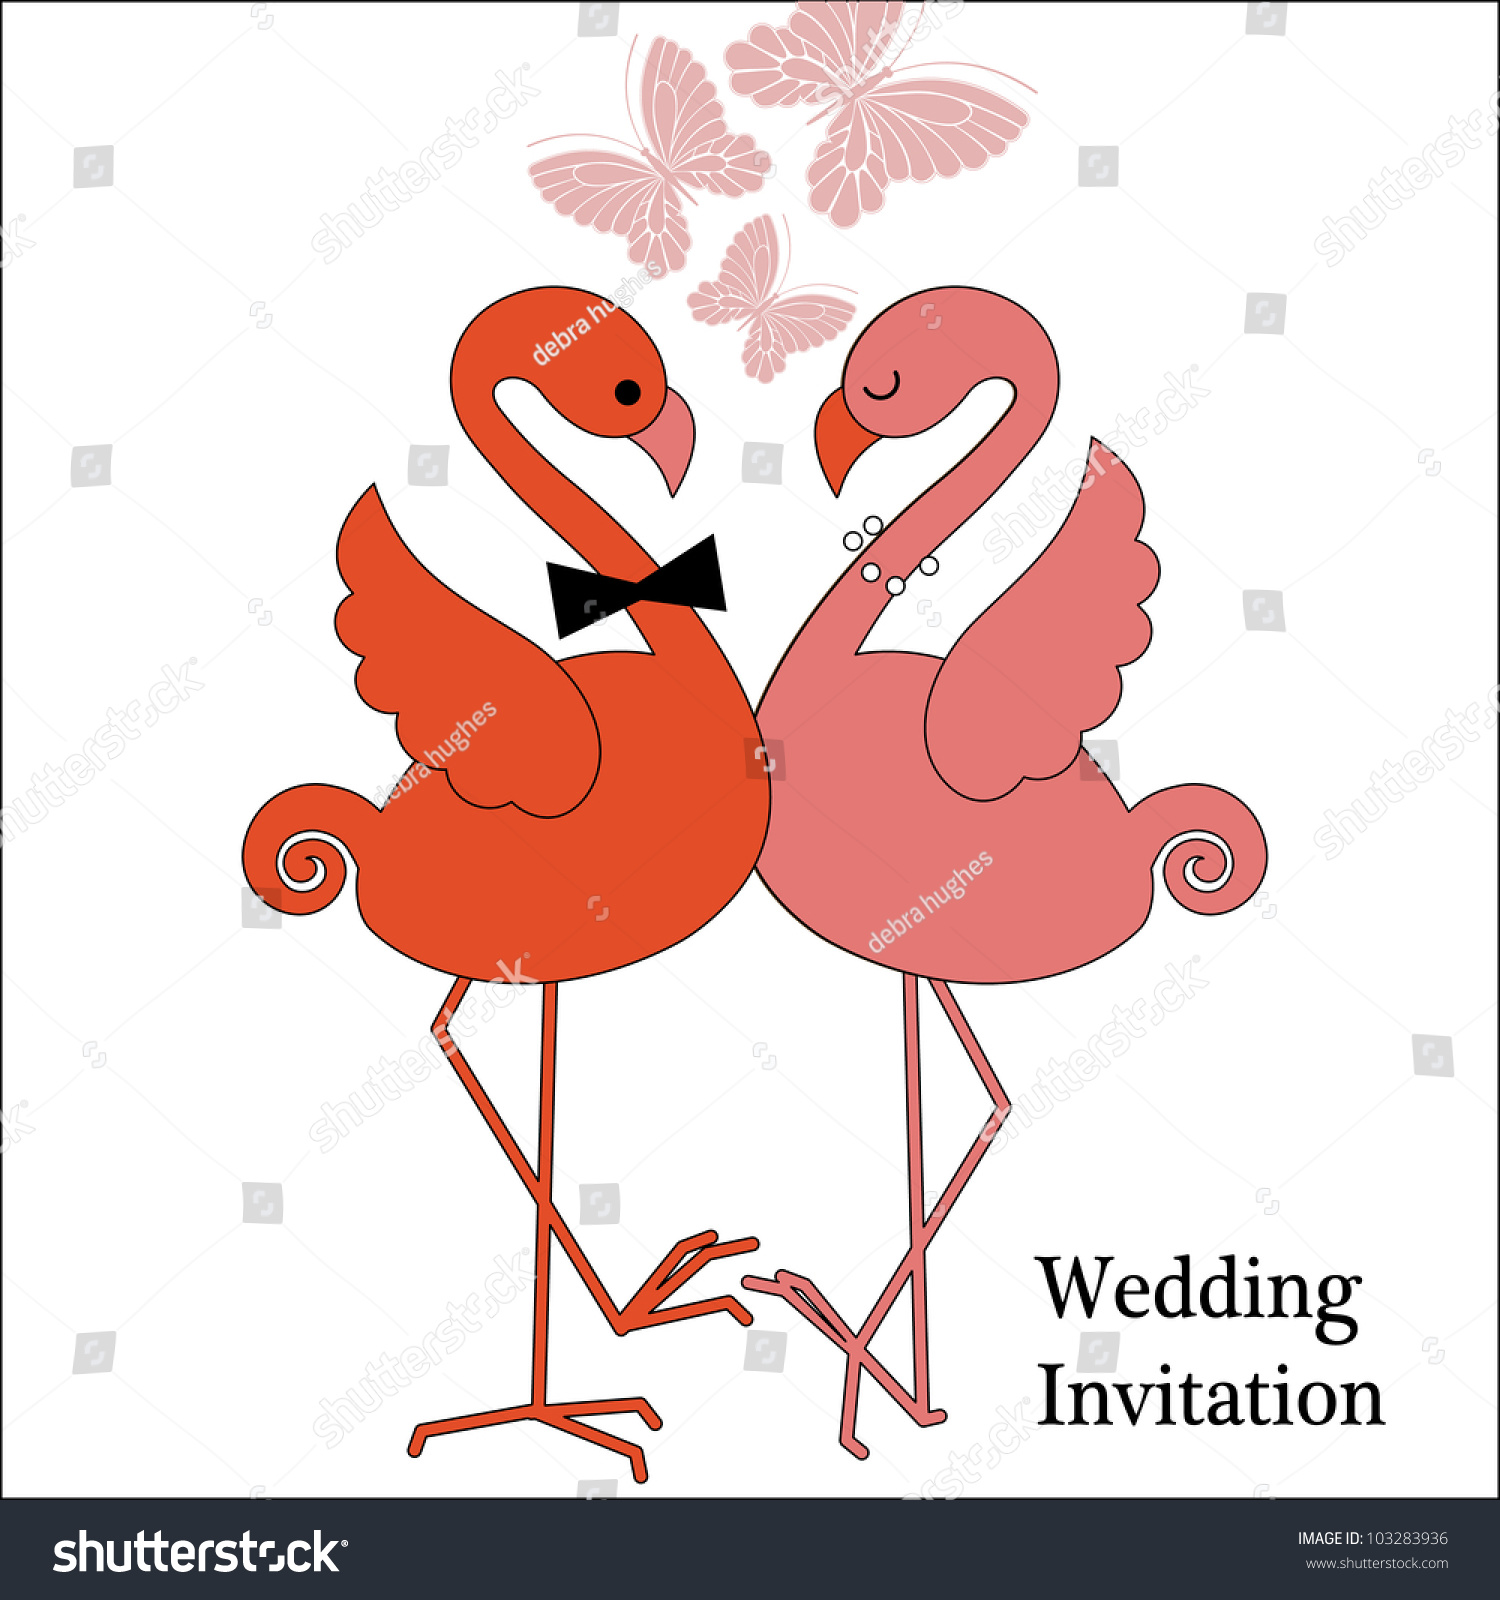 Flamingo Wedding Invitation Stock Vector (2018) 103283936 - Shutterstock